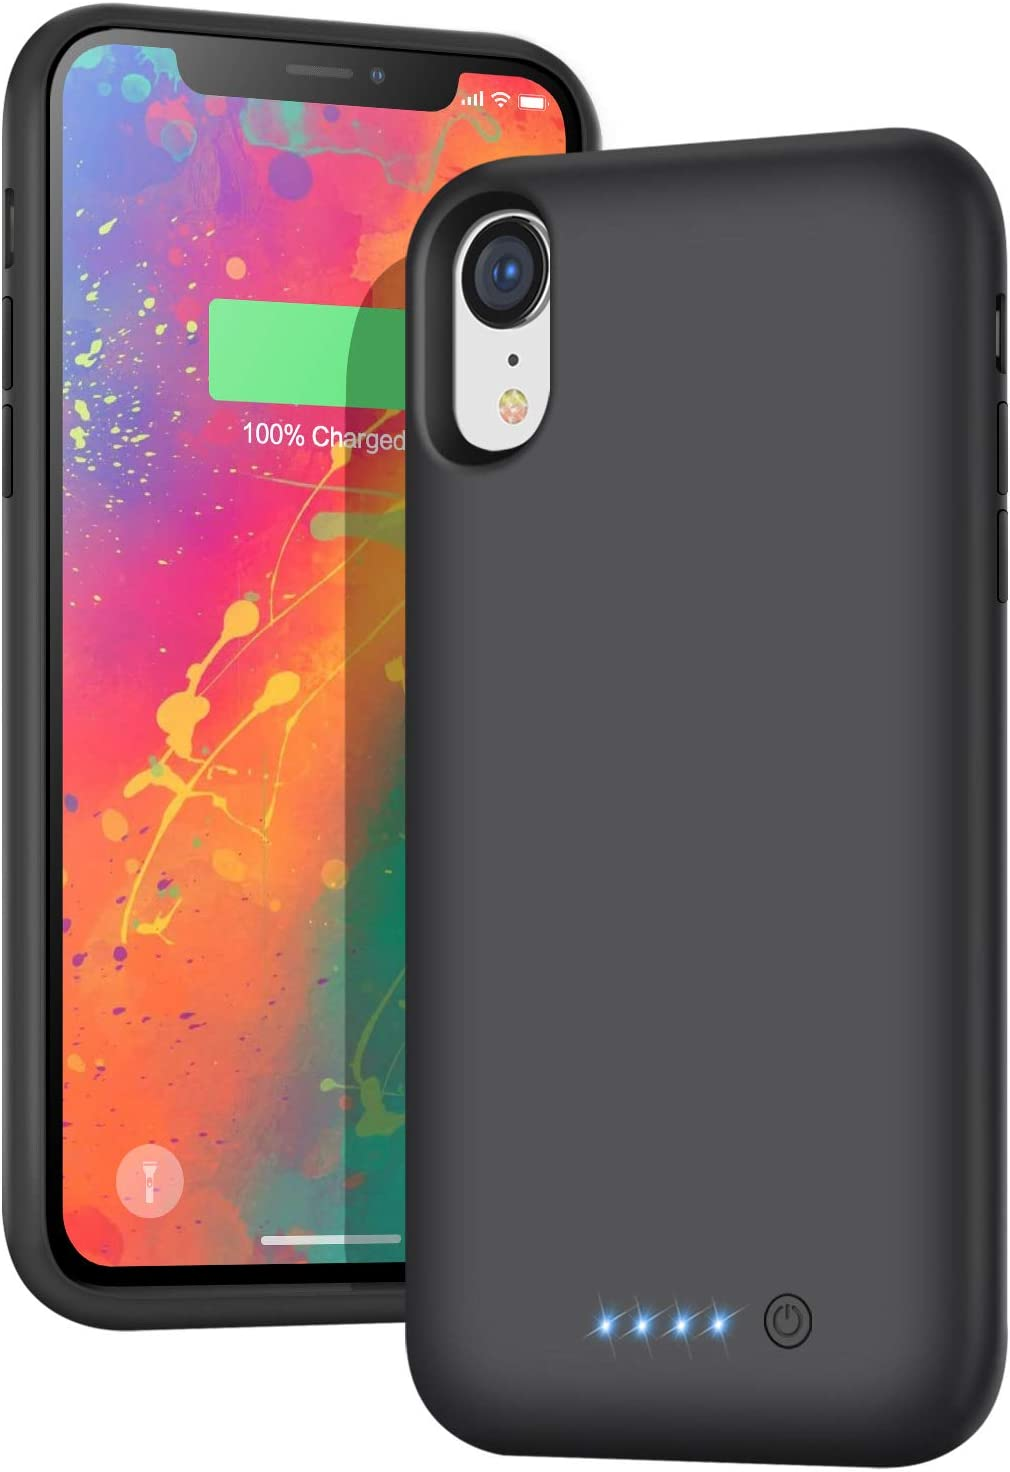 Battery Case for iPhone xr,【6800mah High Capacity】 H H·E·T·P Charging Case Extend 200% Battery Life,Portable Protective Charger Case for Apple iPhone xr (6.1inch) (Black)